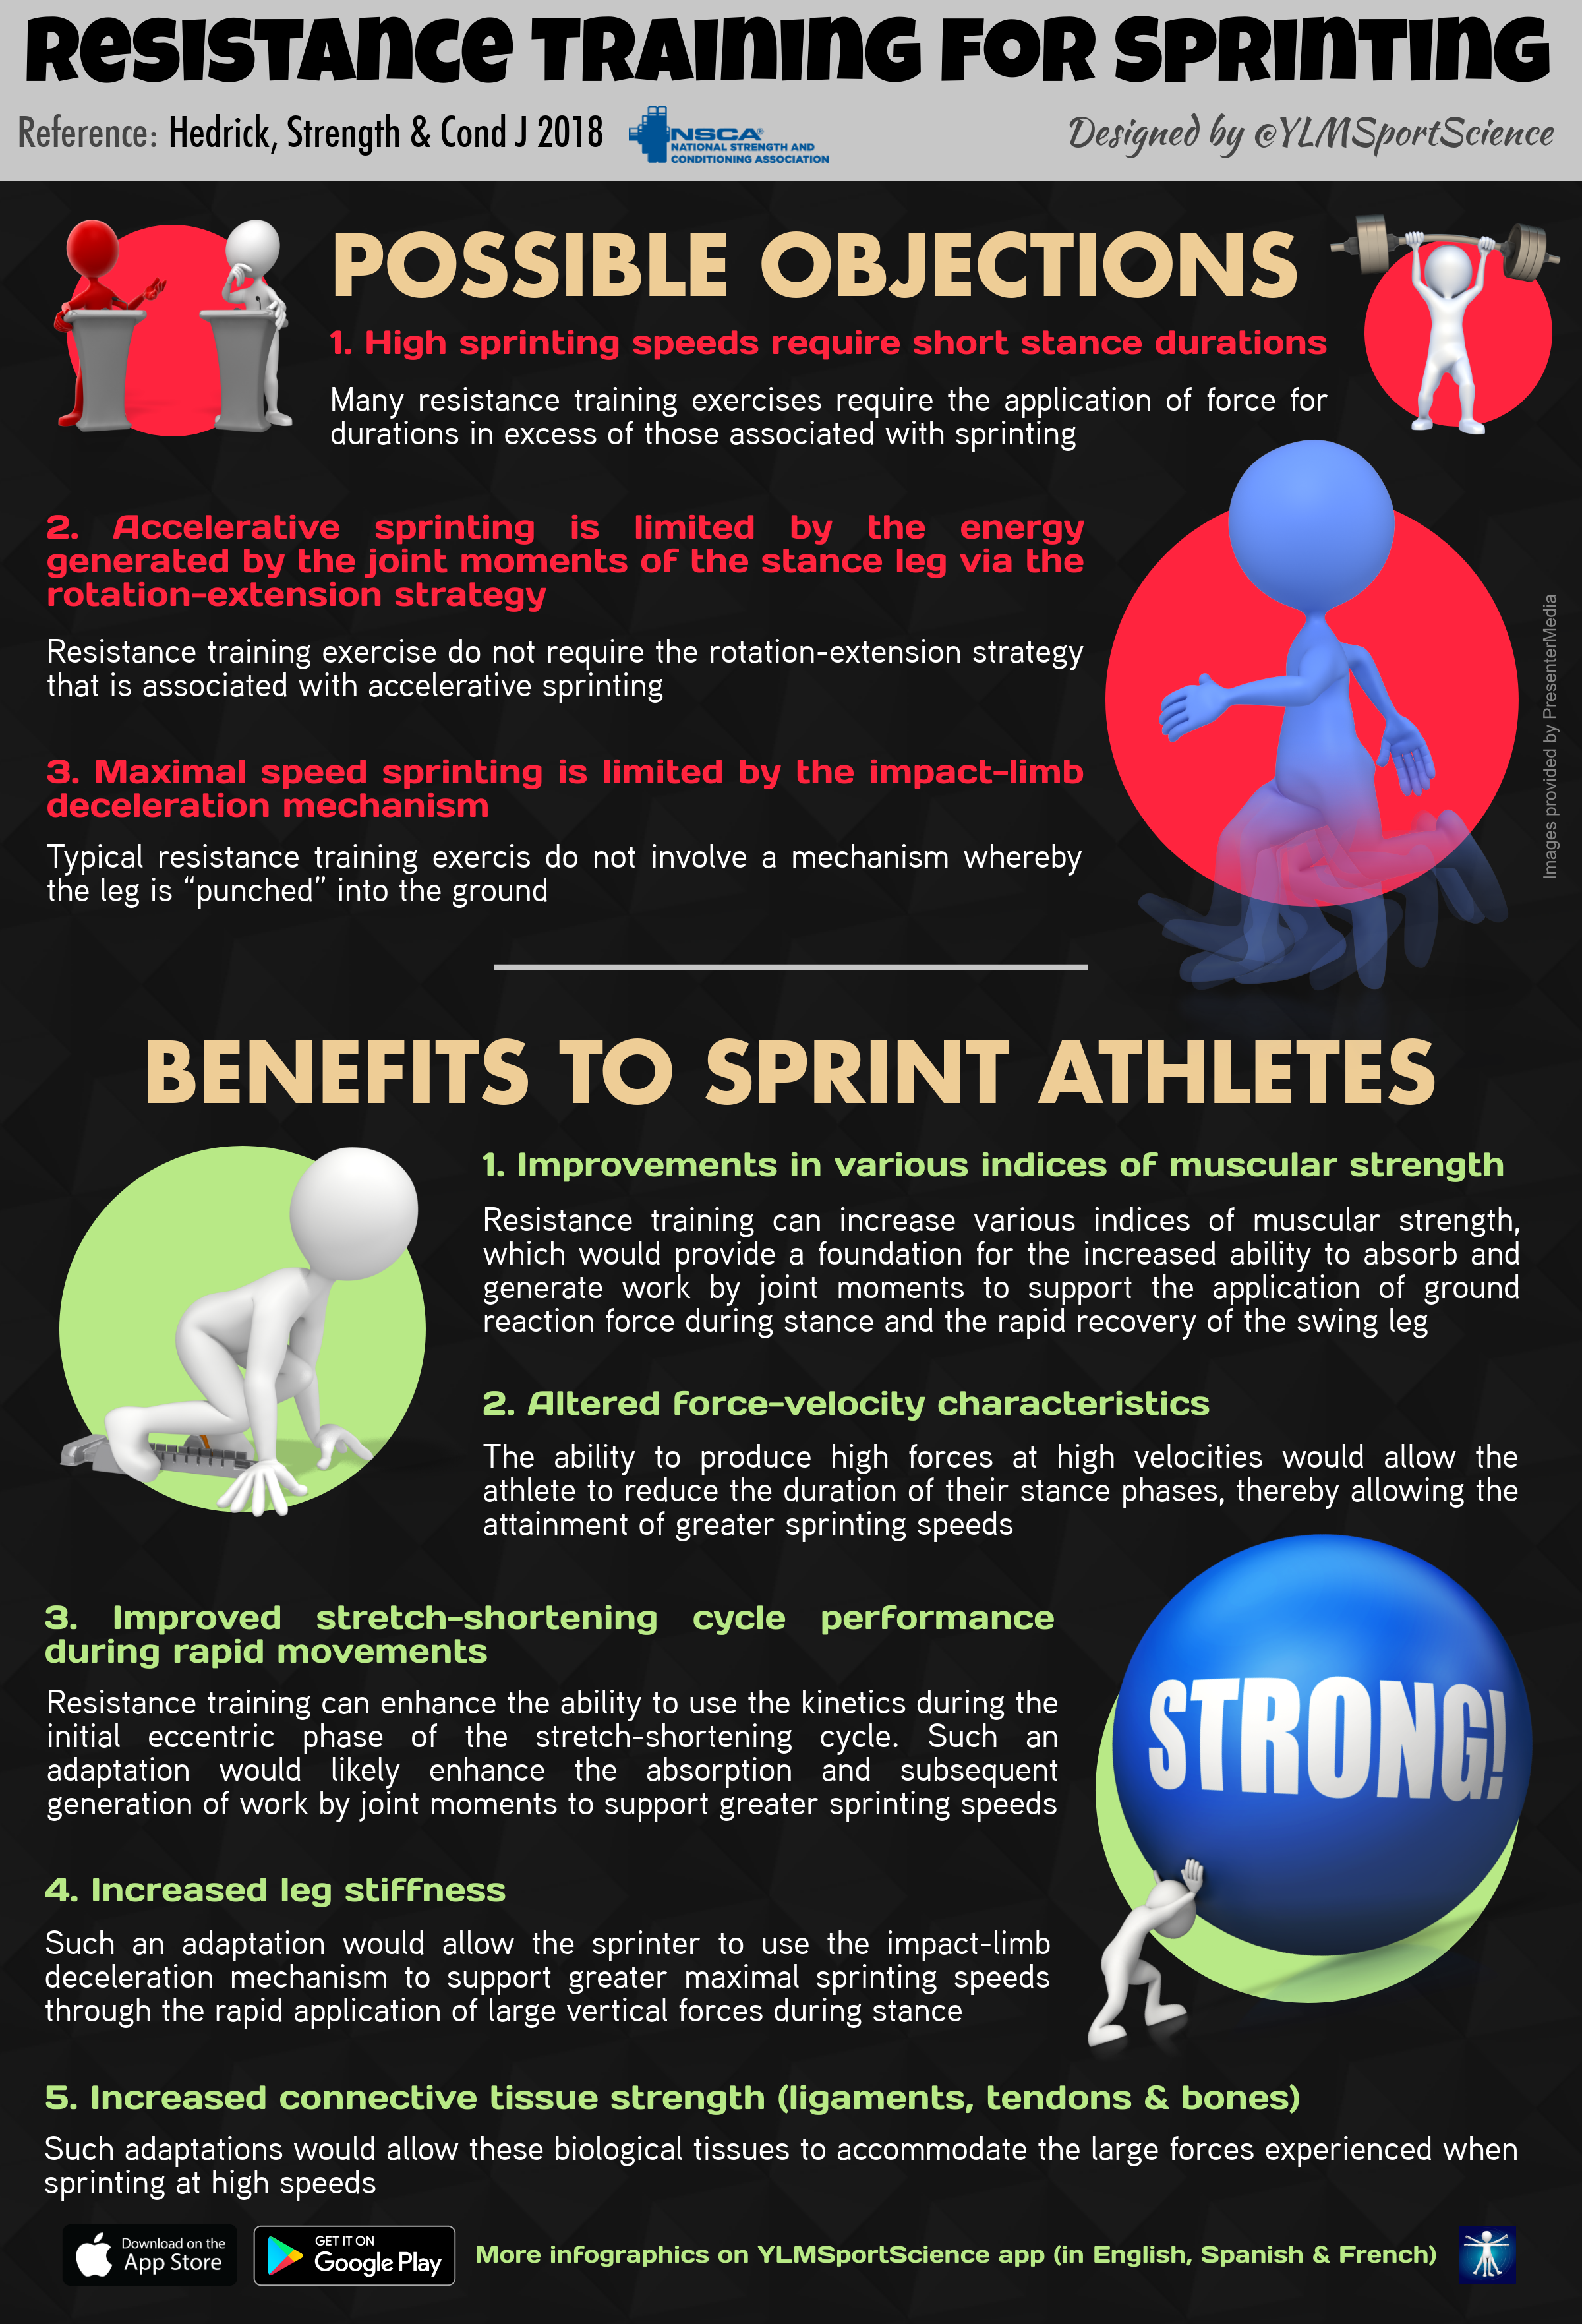 Infographic: Resistance Training for Sprinting